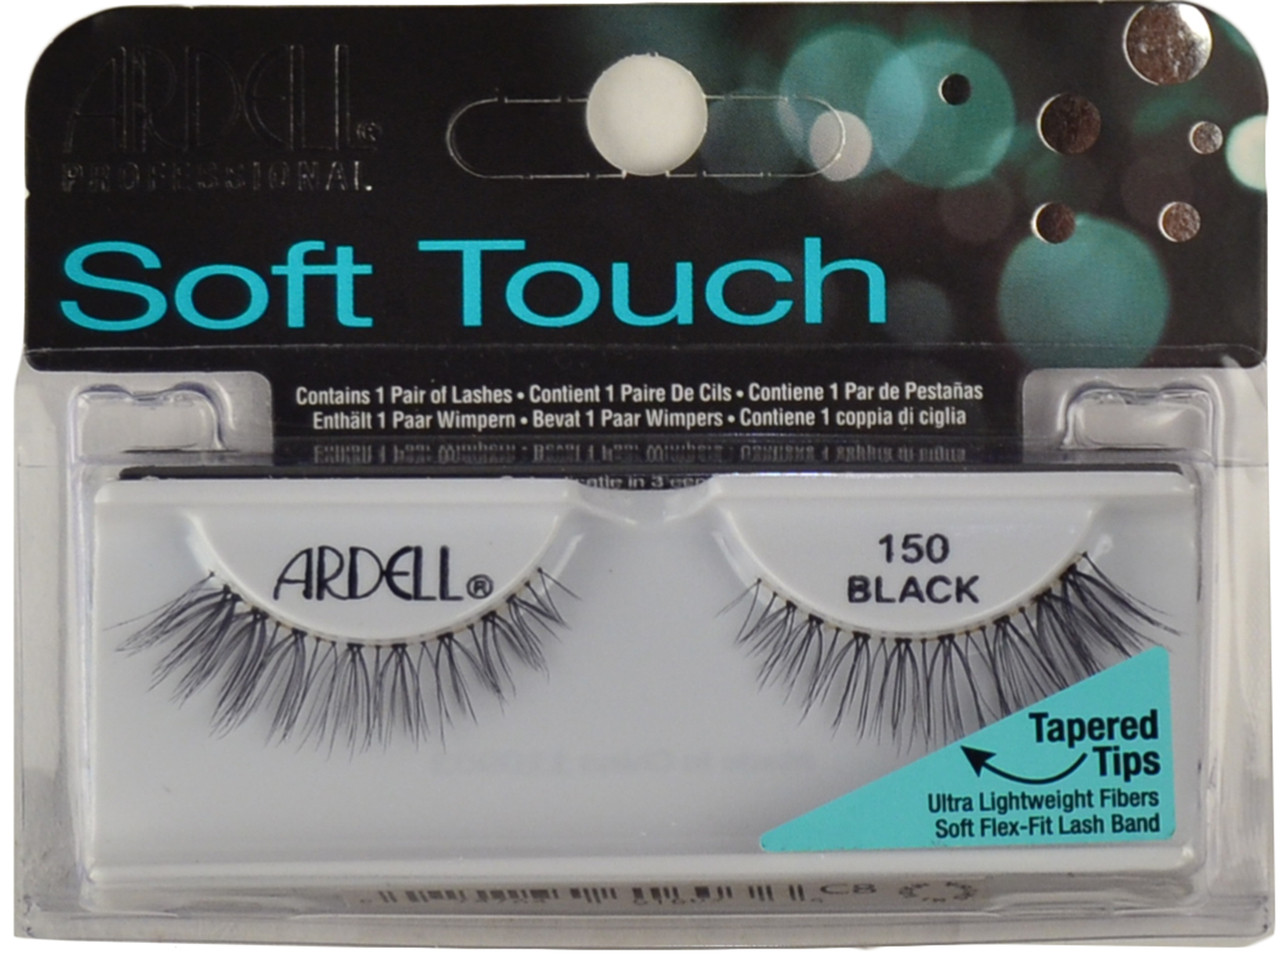 402a549daa1 Ardell Lashes Soft Touch 150 Black Ardell Lashes, Free Shipping at ...